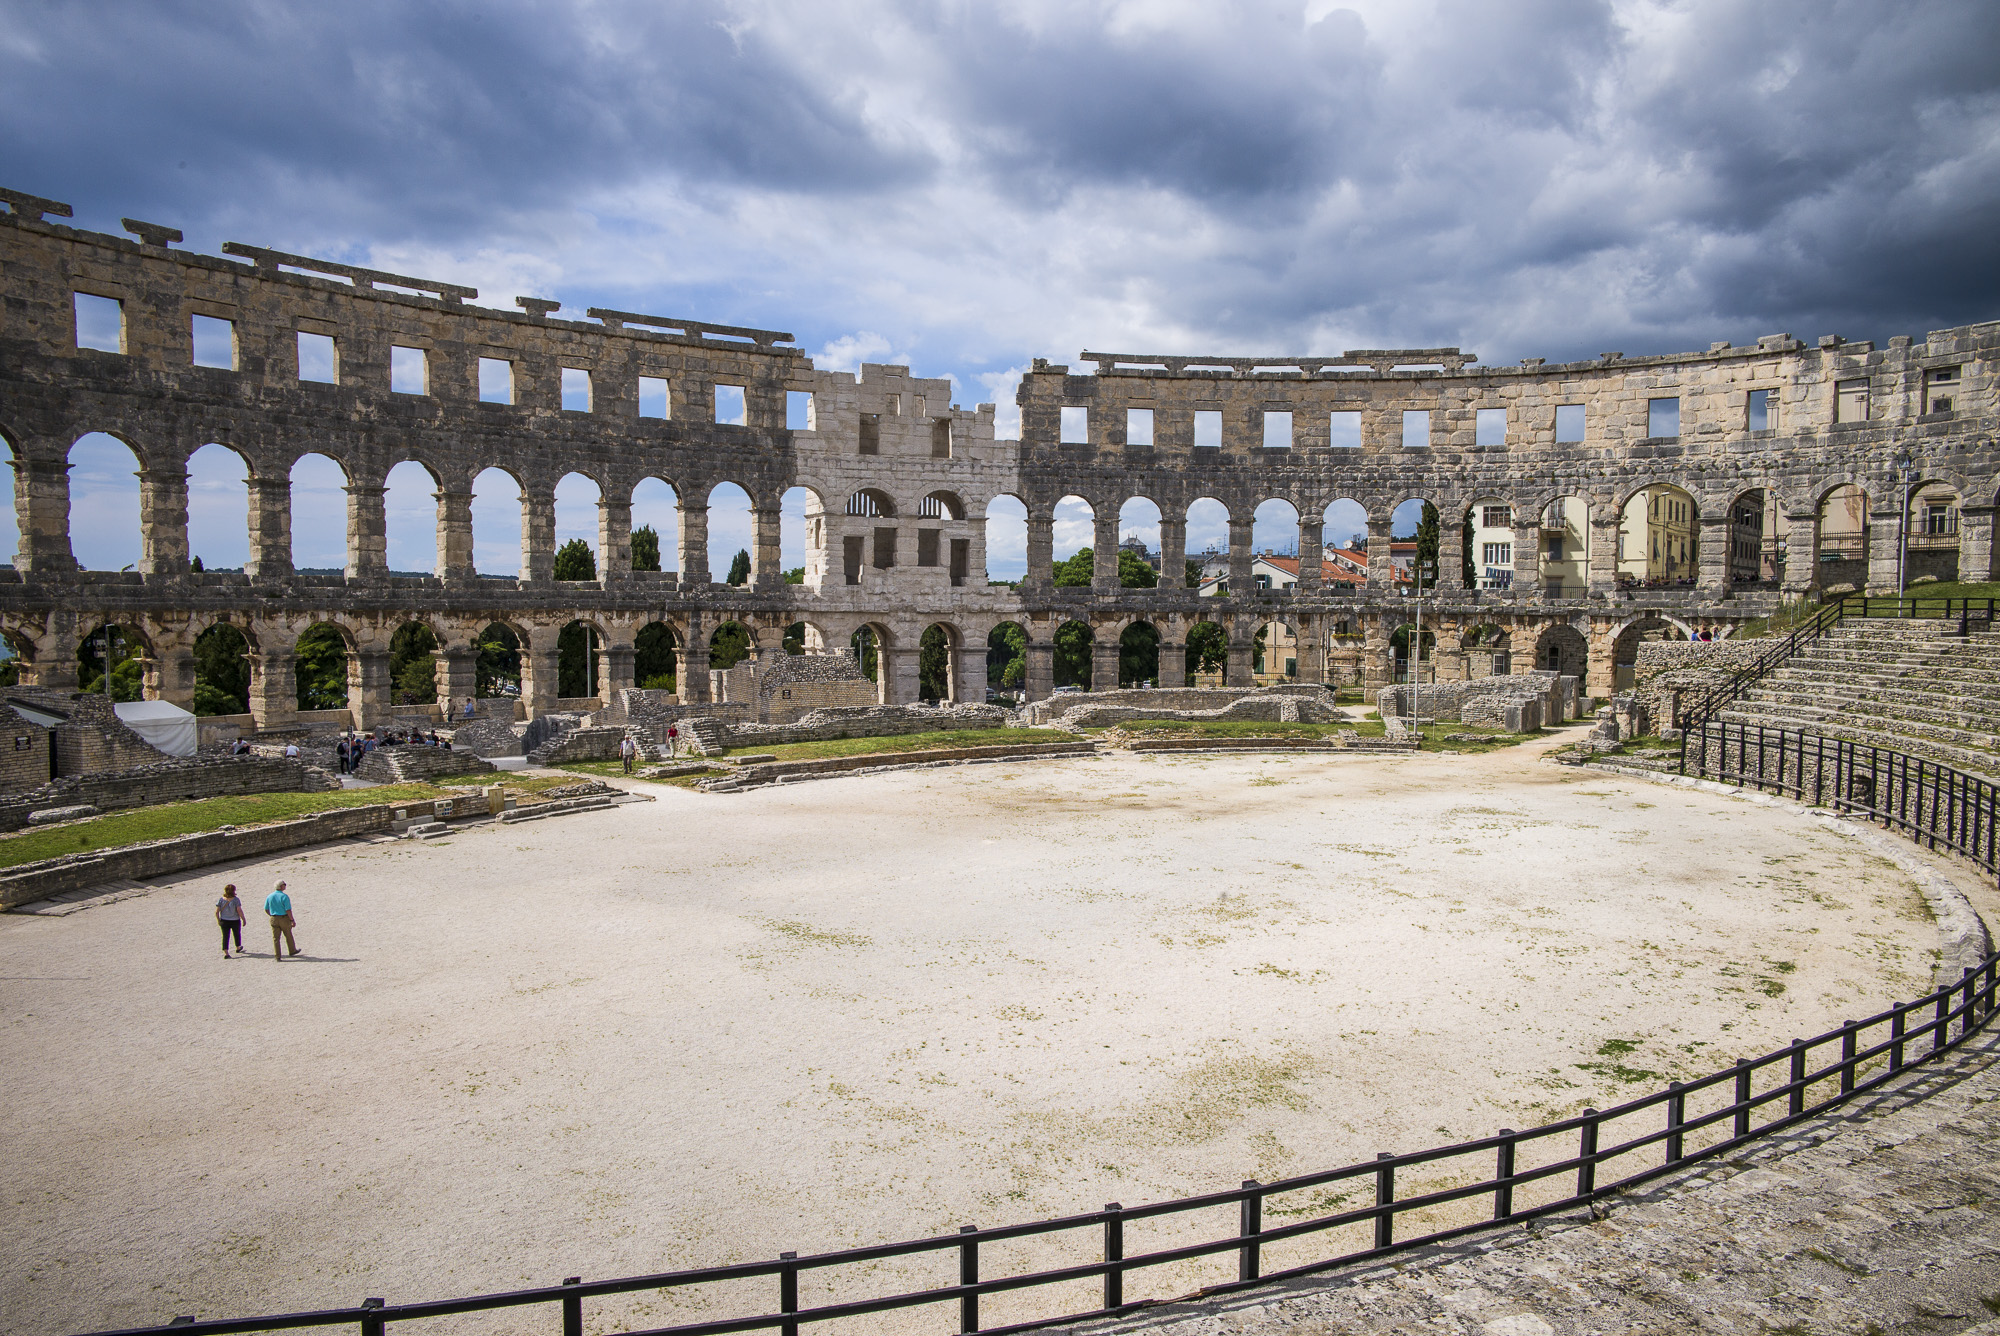 The gladiator area in Pula